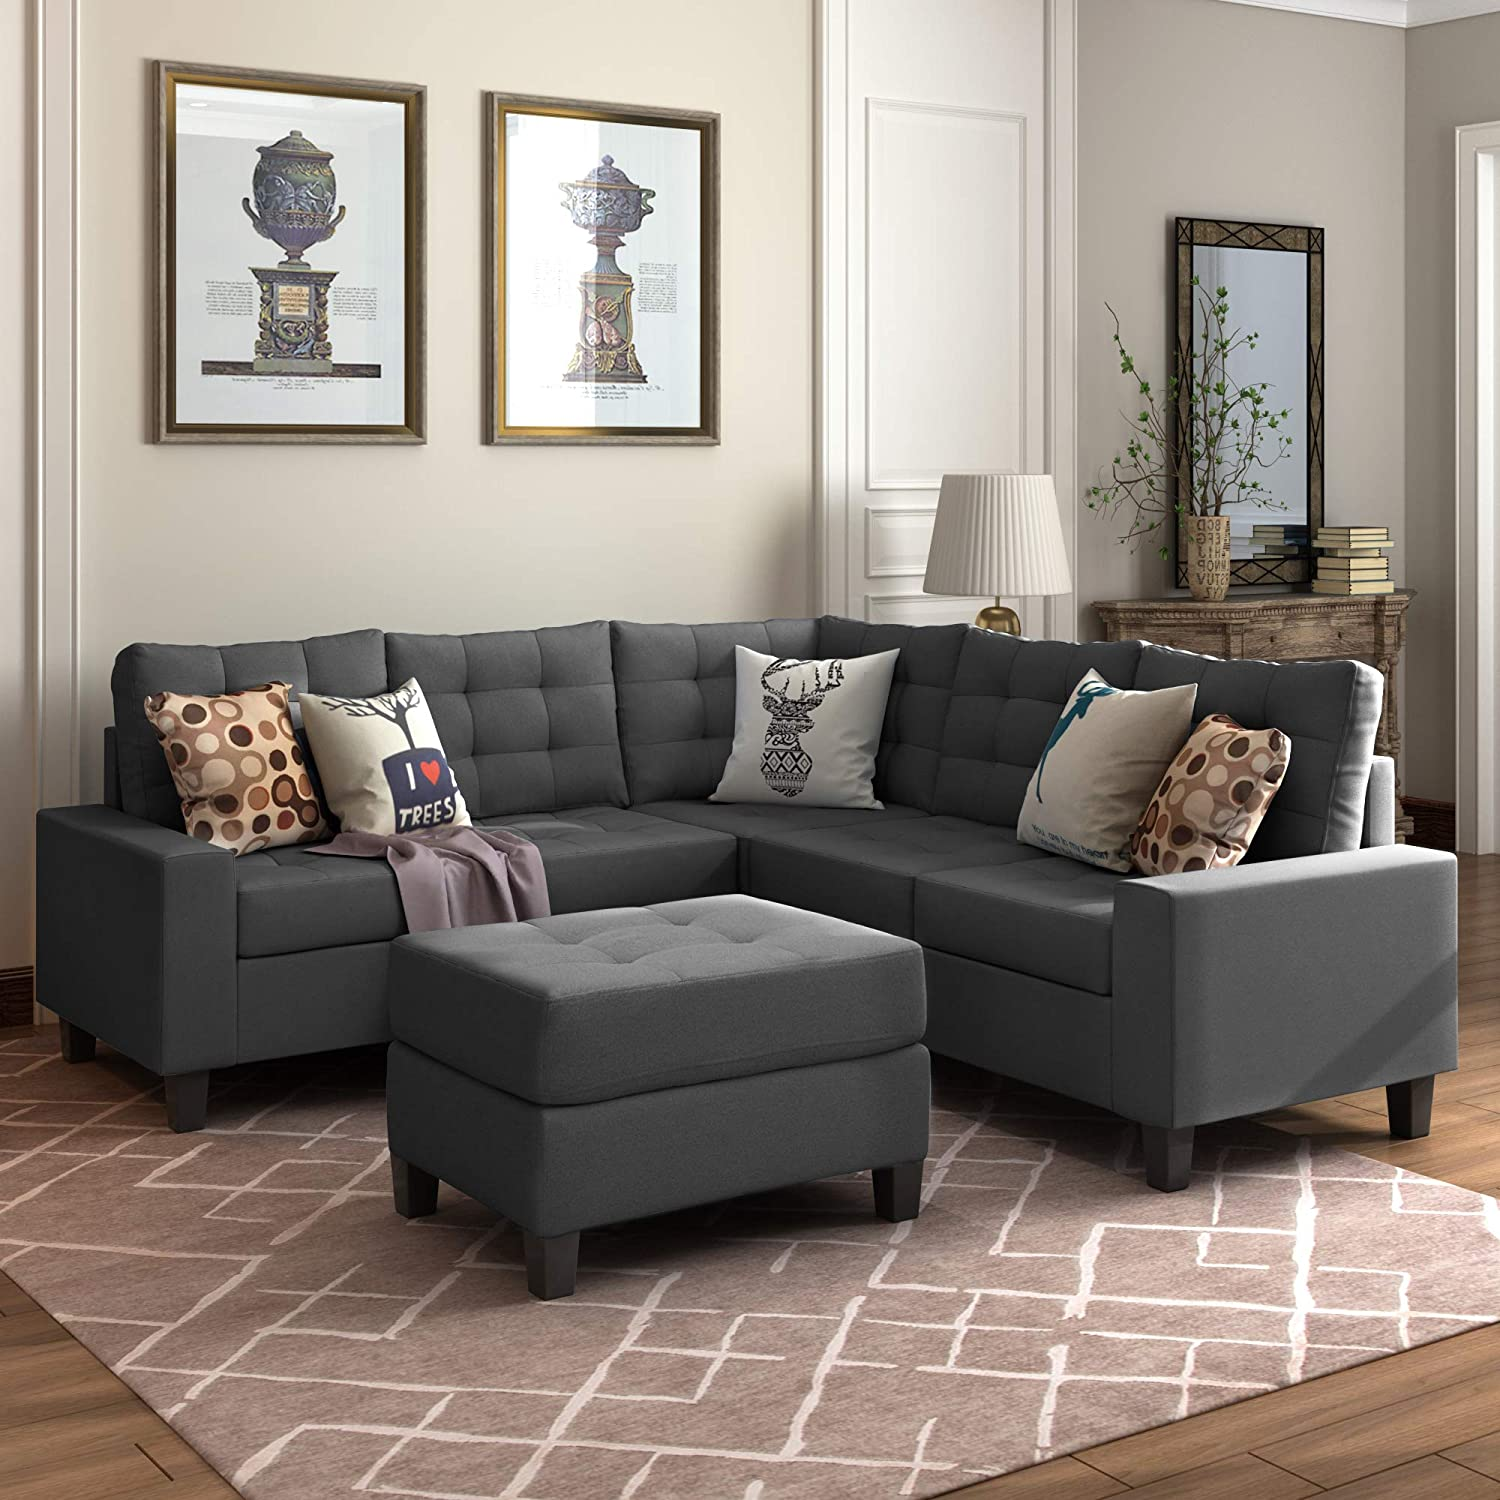 Merax Sectional Sofa with Ottoman 3-Piece Sofa for Living Room Furniture (Dark Grey)